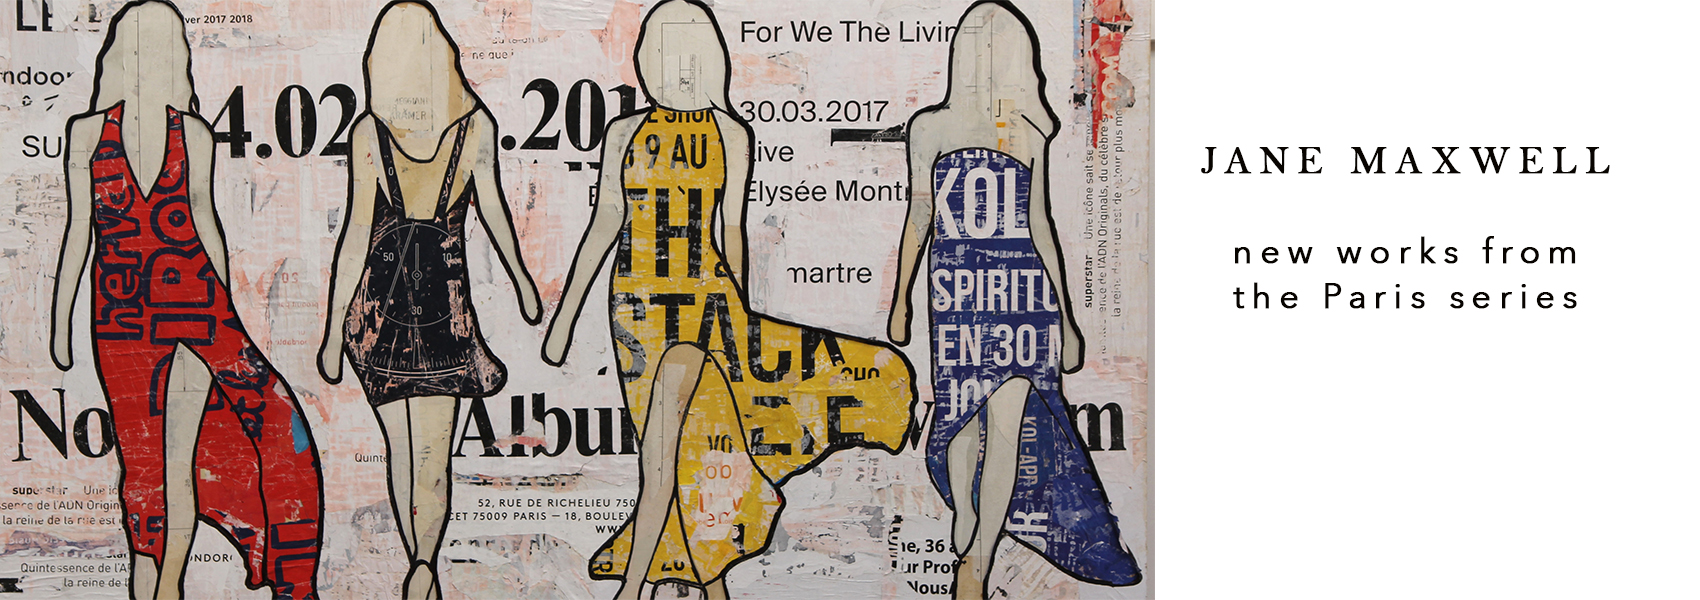 paris collage art boston painter